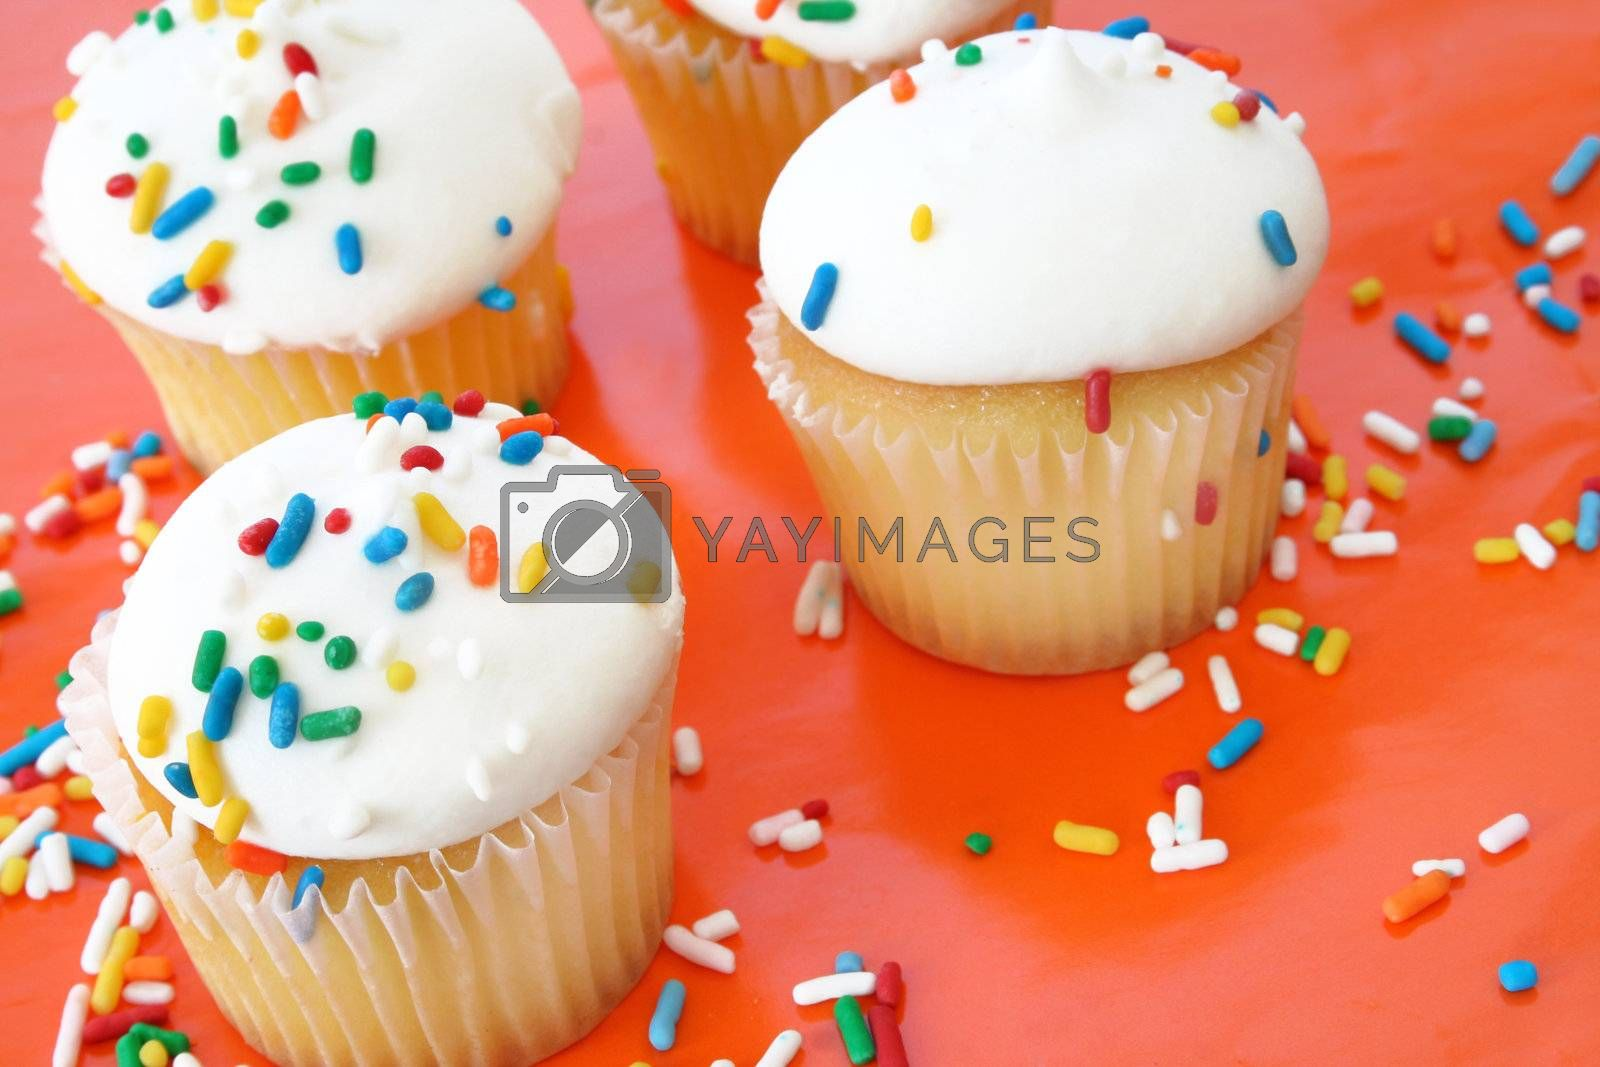 Cupcakes with sprinkles on an orange background.